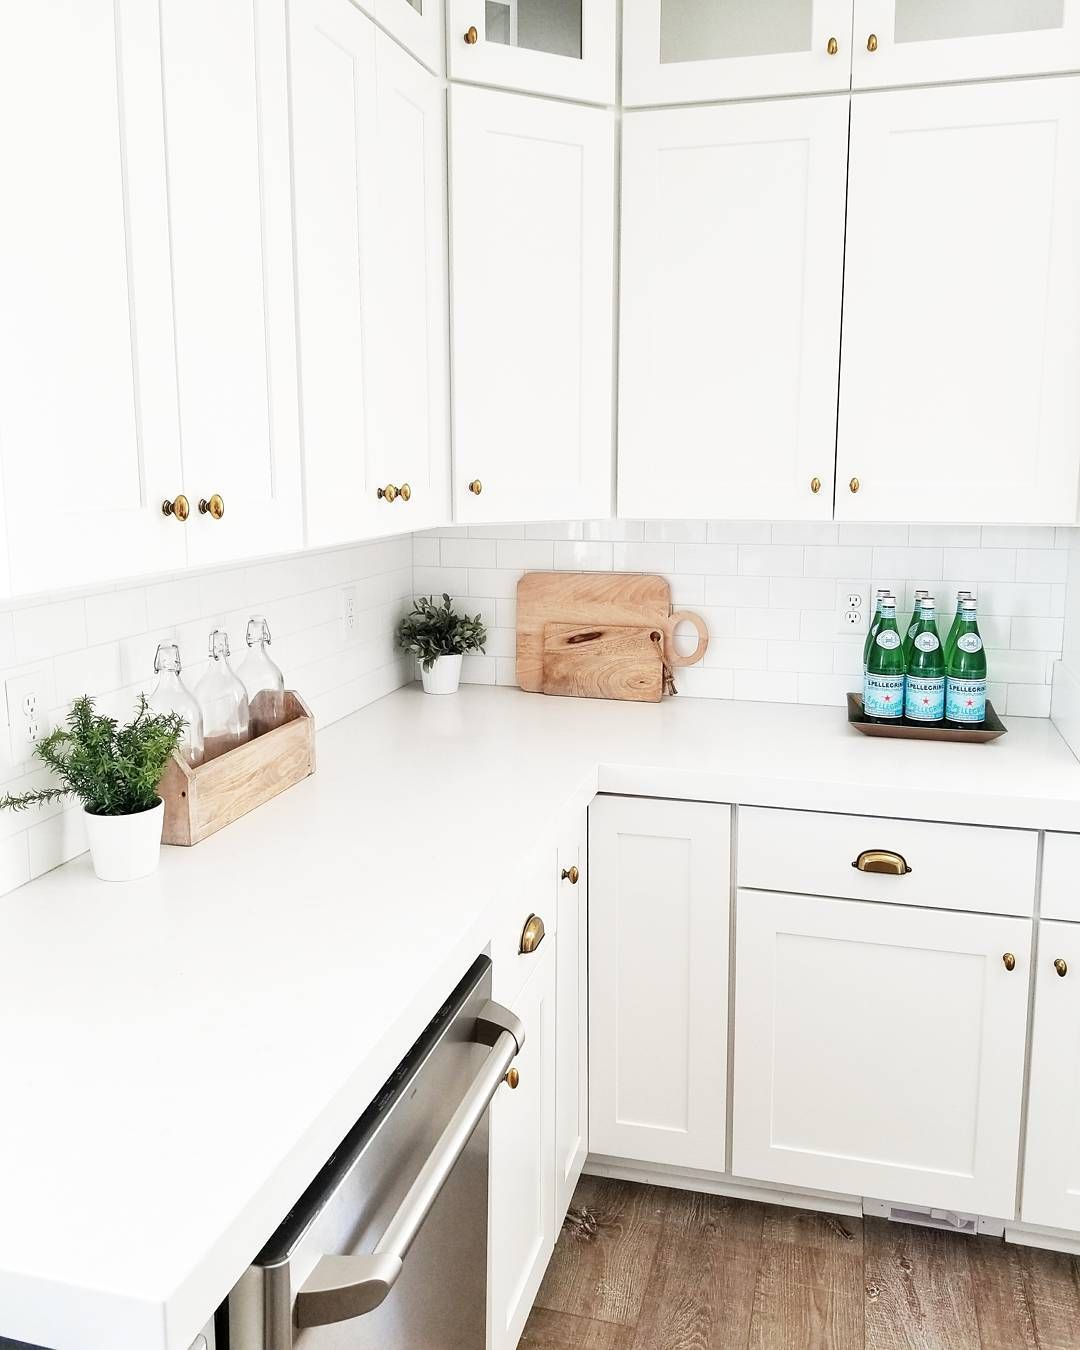 A Nice Corner Dedicated To Your Culinary Inspiration With S Pellegrino Thanks Whitelanedecor For This Nice Pic Kitchen Glass Kitchen Cabinets Kitchen Design